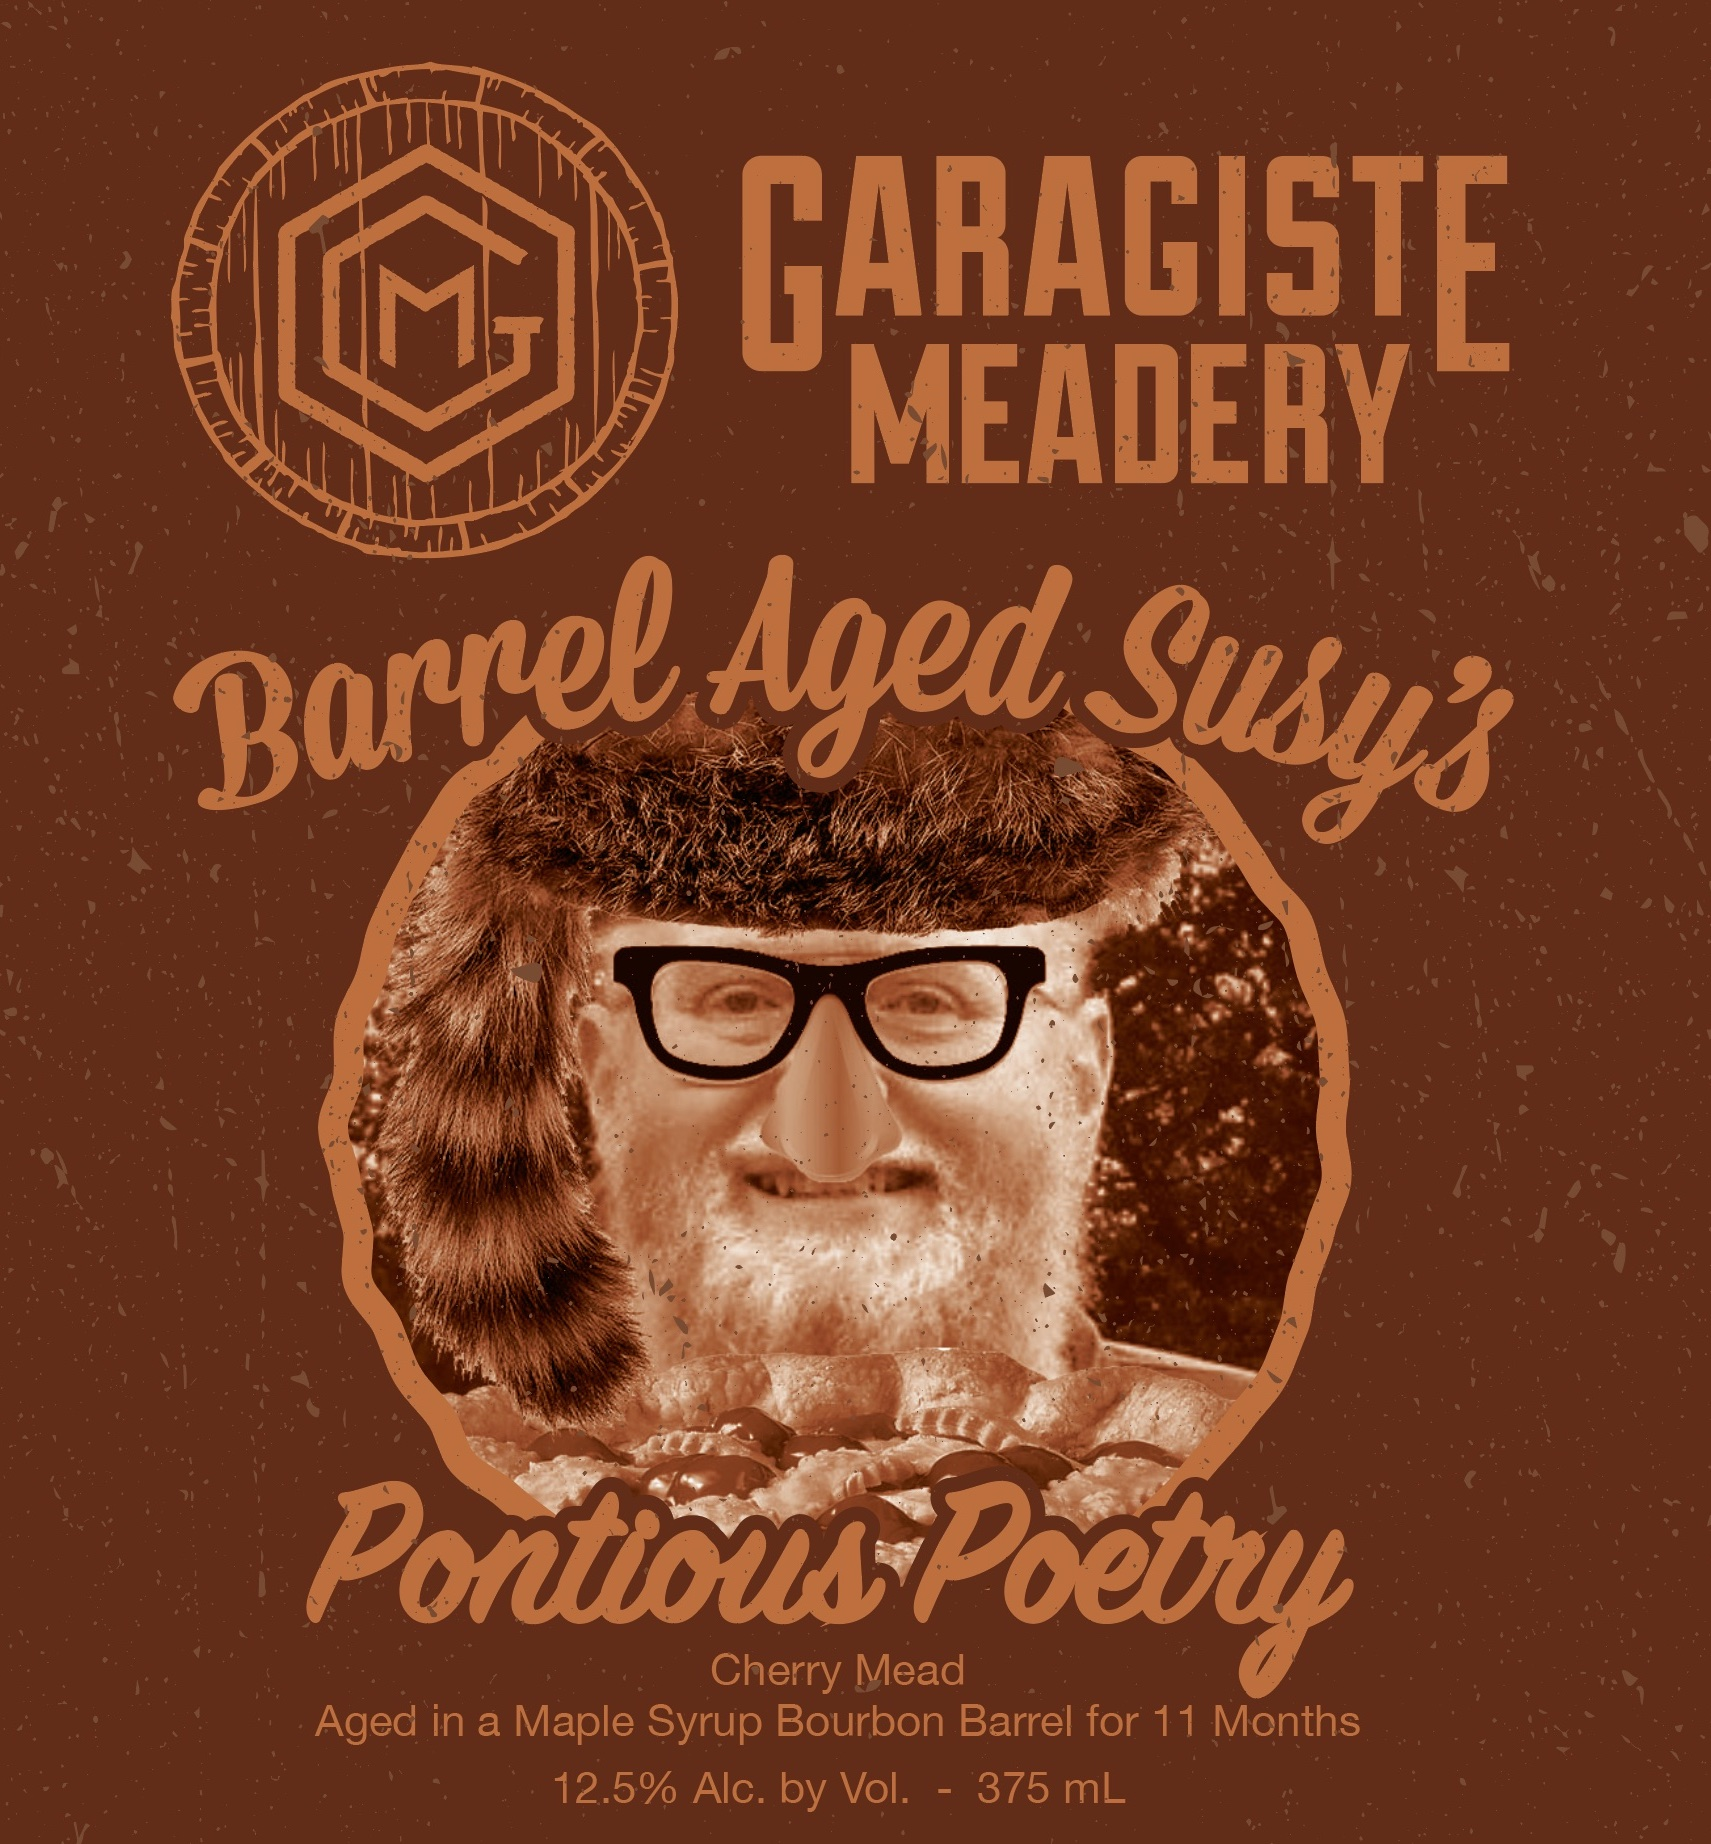 BA SUSYS PONTIOUS POETRY 375mL THUMBNAIL